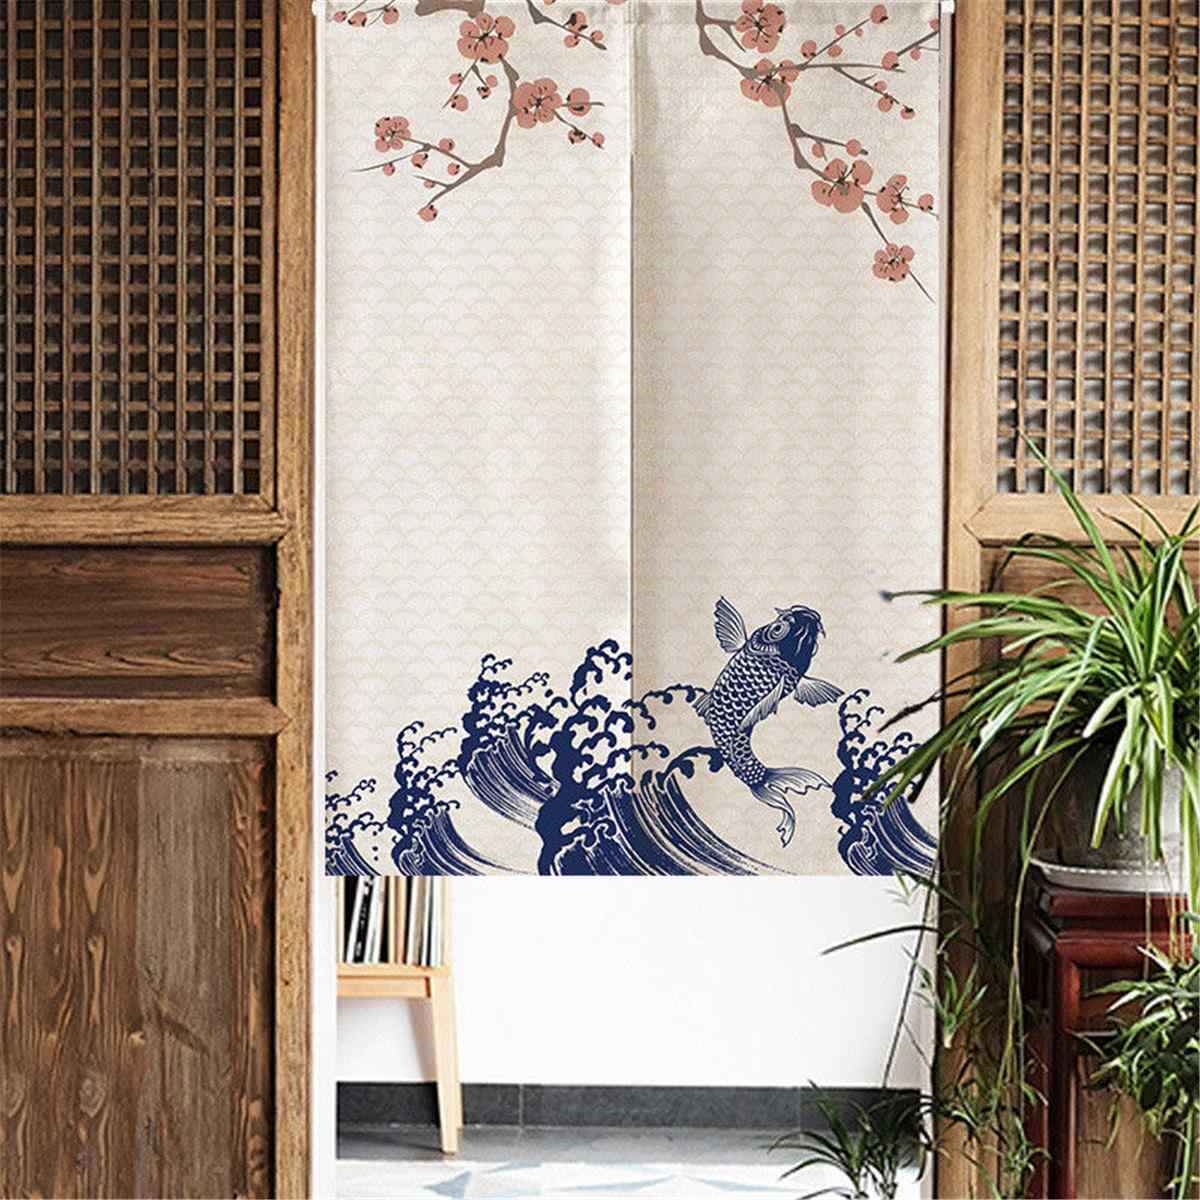 Home Textile Competent Romantic Blossom Cherry Tapestry Kitchen Curtains Japanese Noren Doorway Curtain 85x150cm Home Decorative Door Curtain To Win A High Admiration And Is Widely Trusted At Home And Abroad.